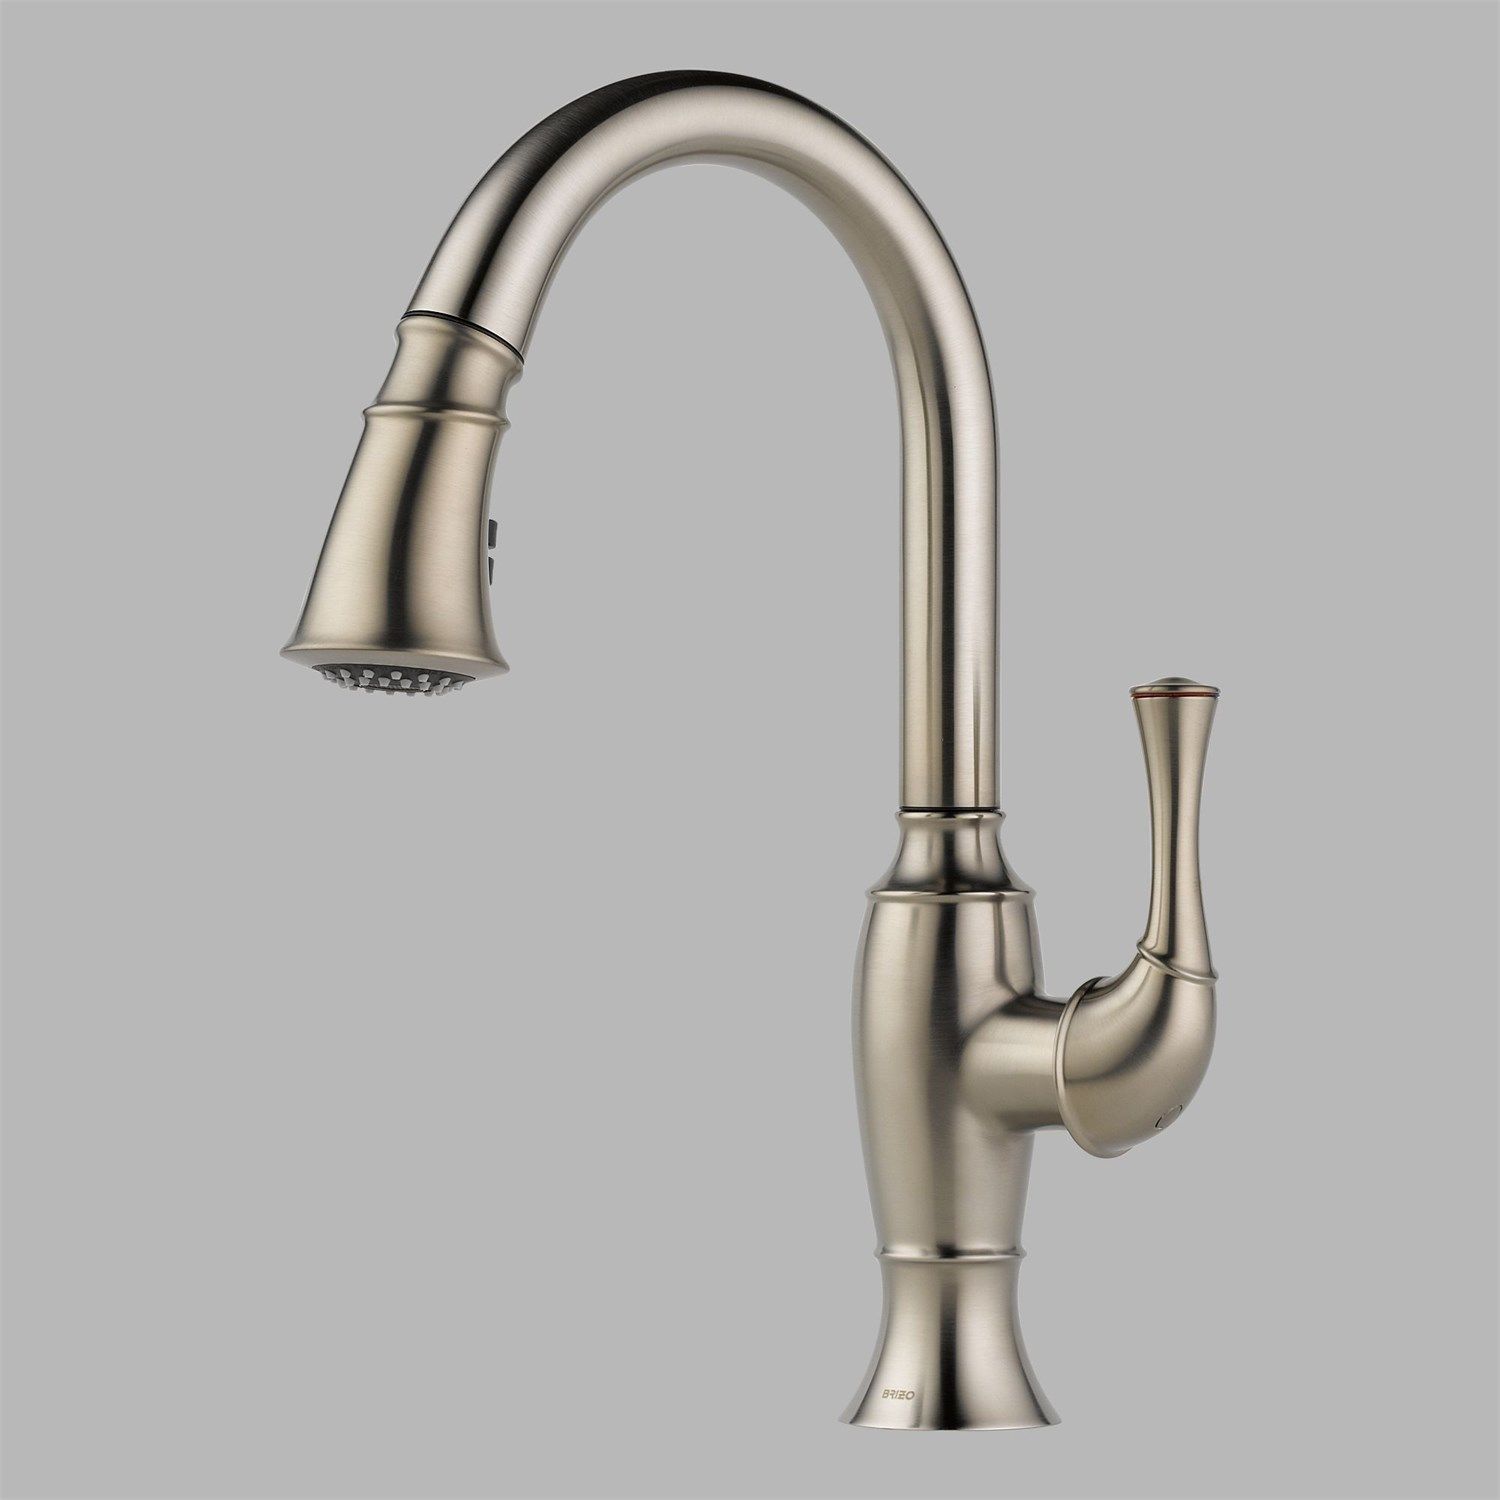 kitchen in by modern space faucets designed was articulating matte this hero faucet brizo black solna arm the